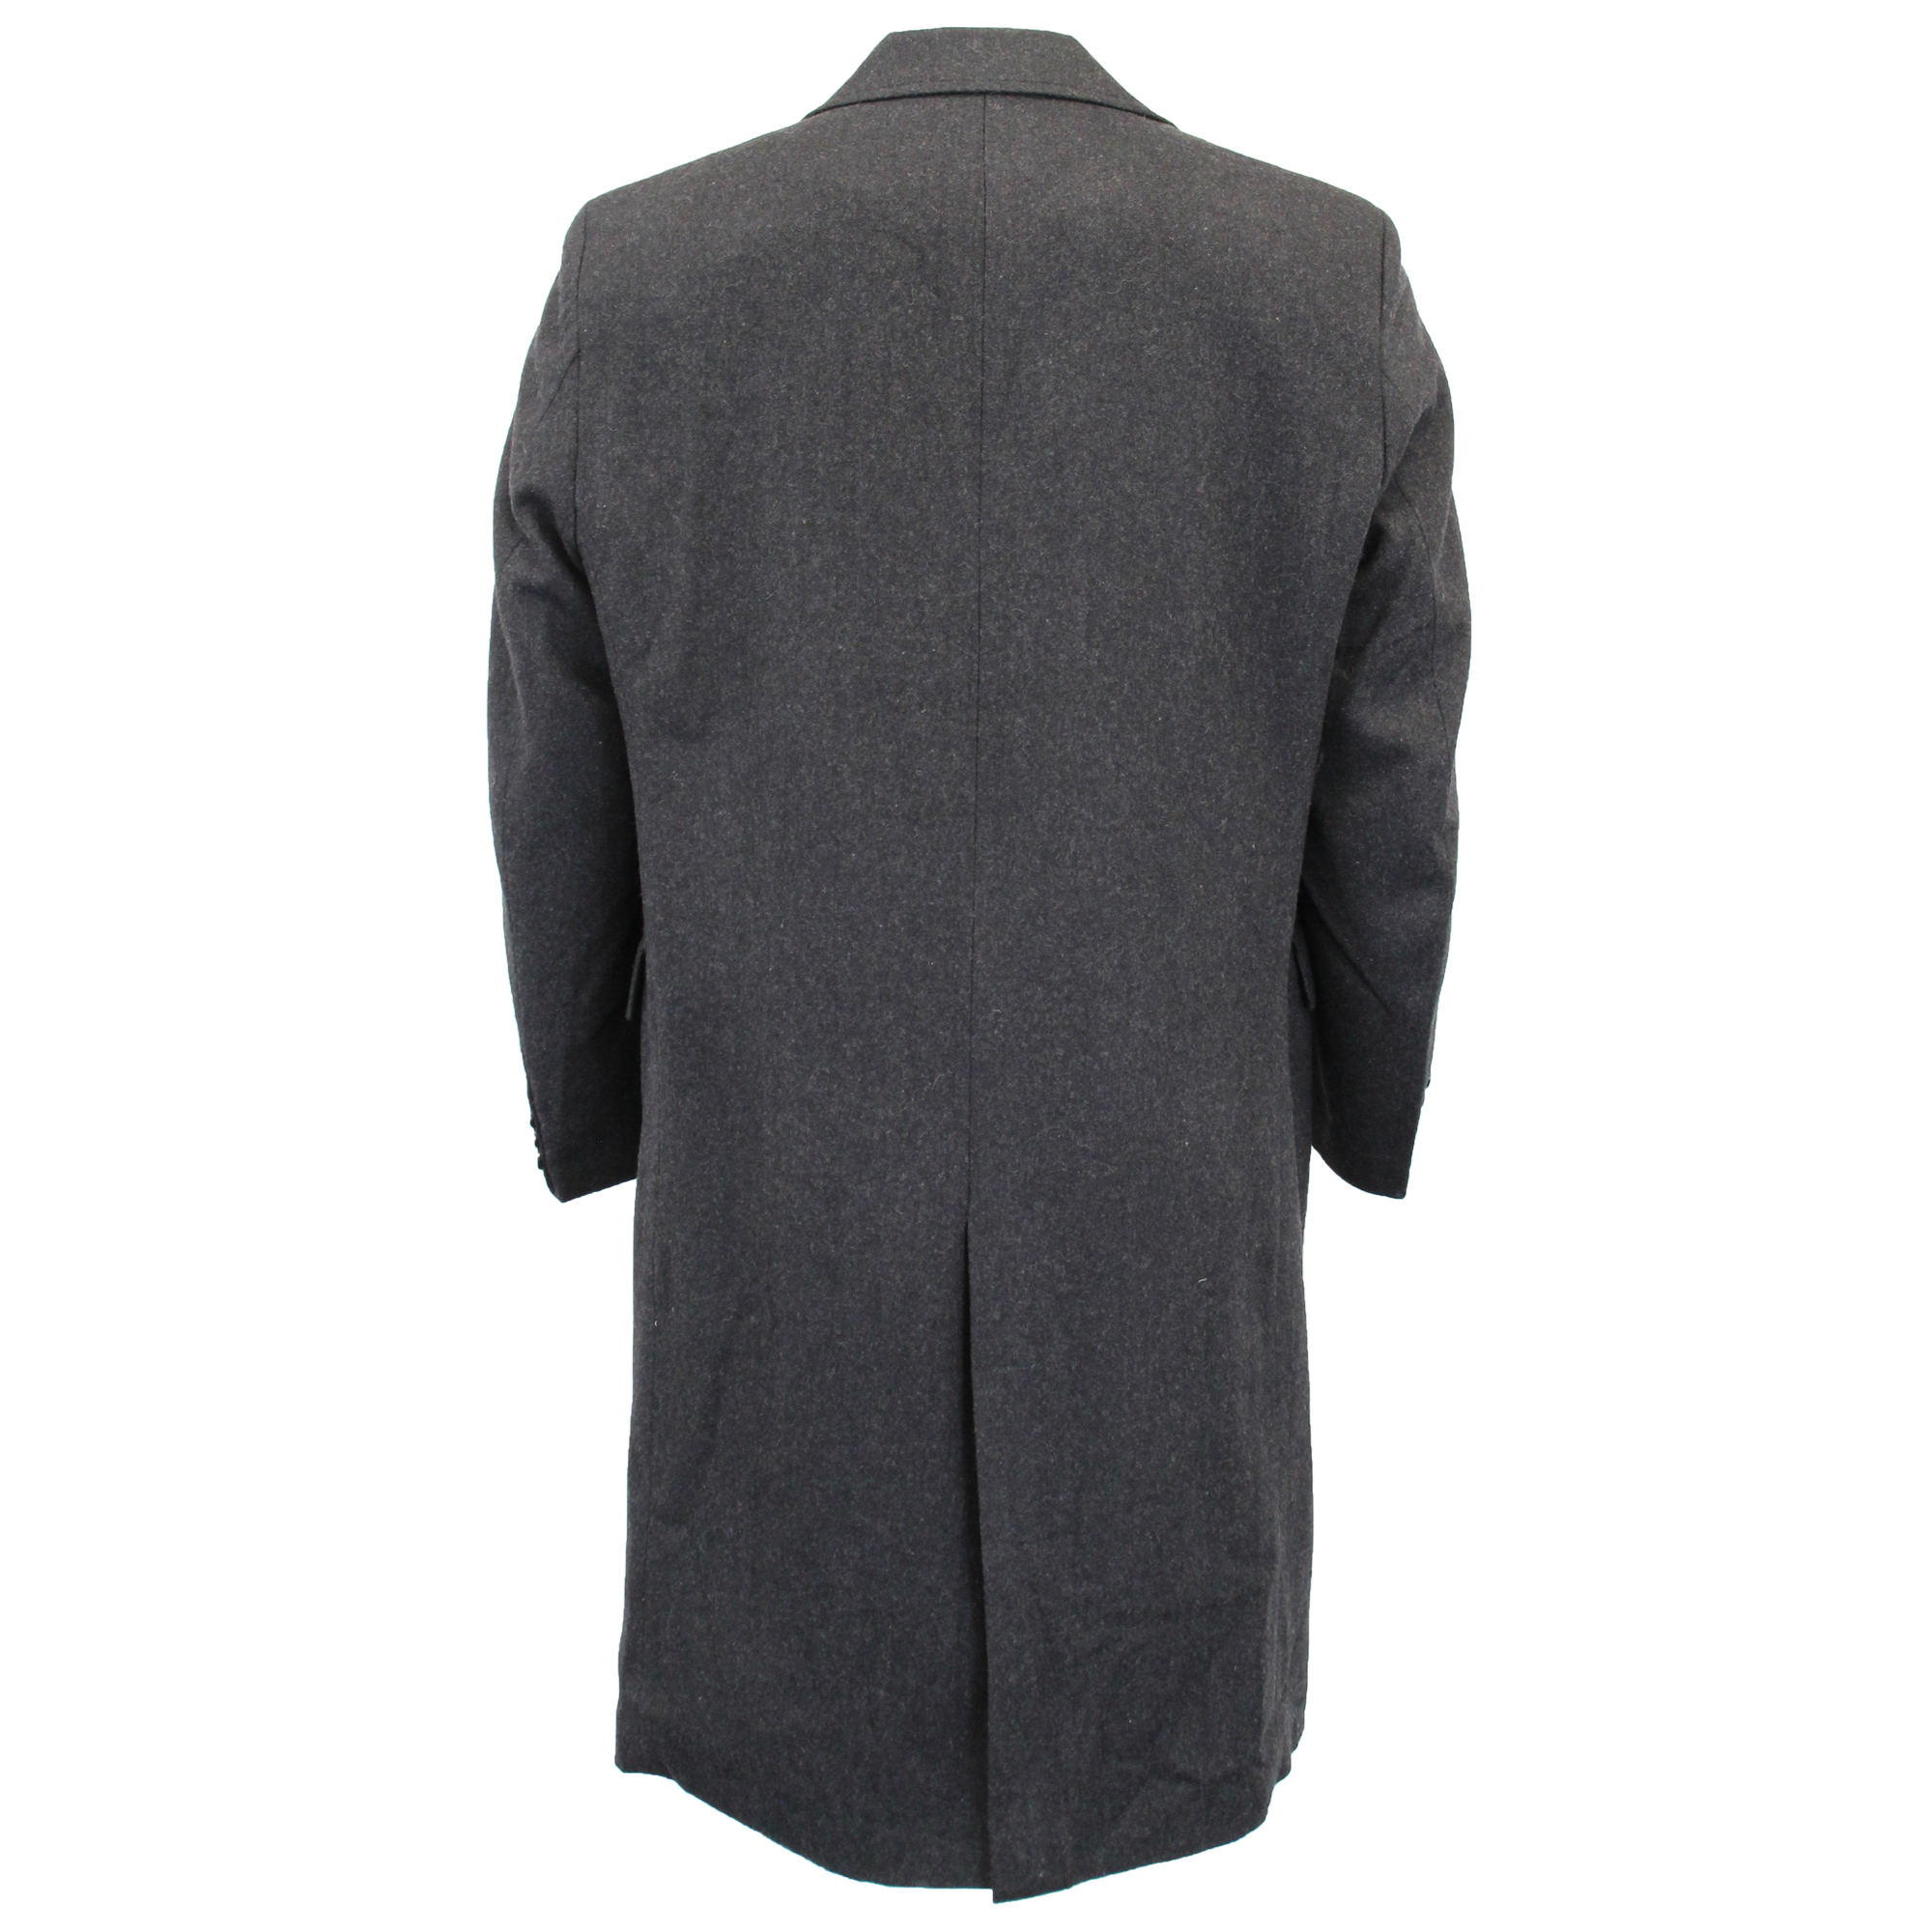 Mens-Wool-Mix-Jacket-Long-Trench-Coat-Collared-Concealed-Button-Lined-Winter-New thumbnail 9